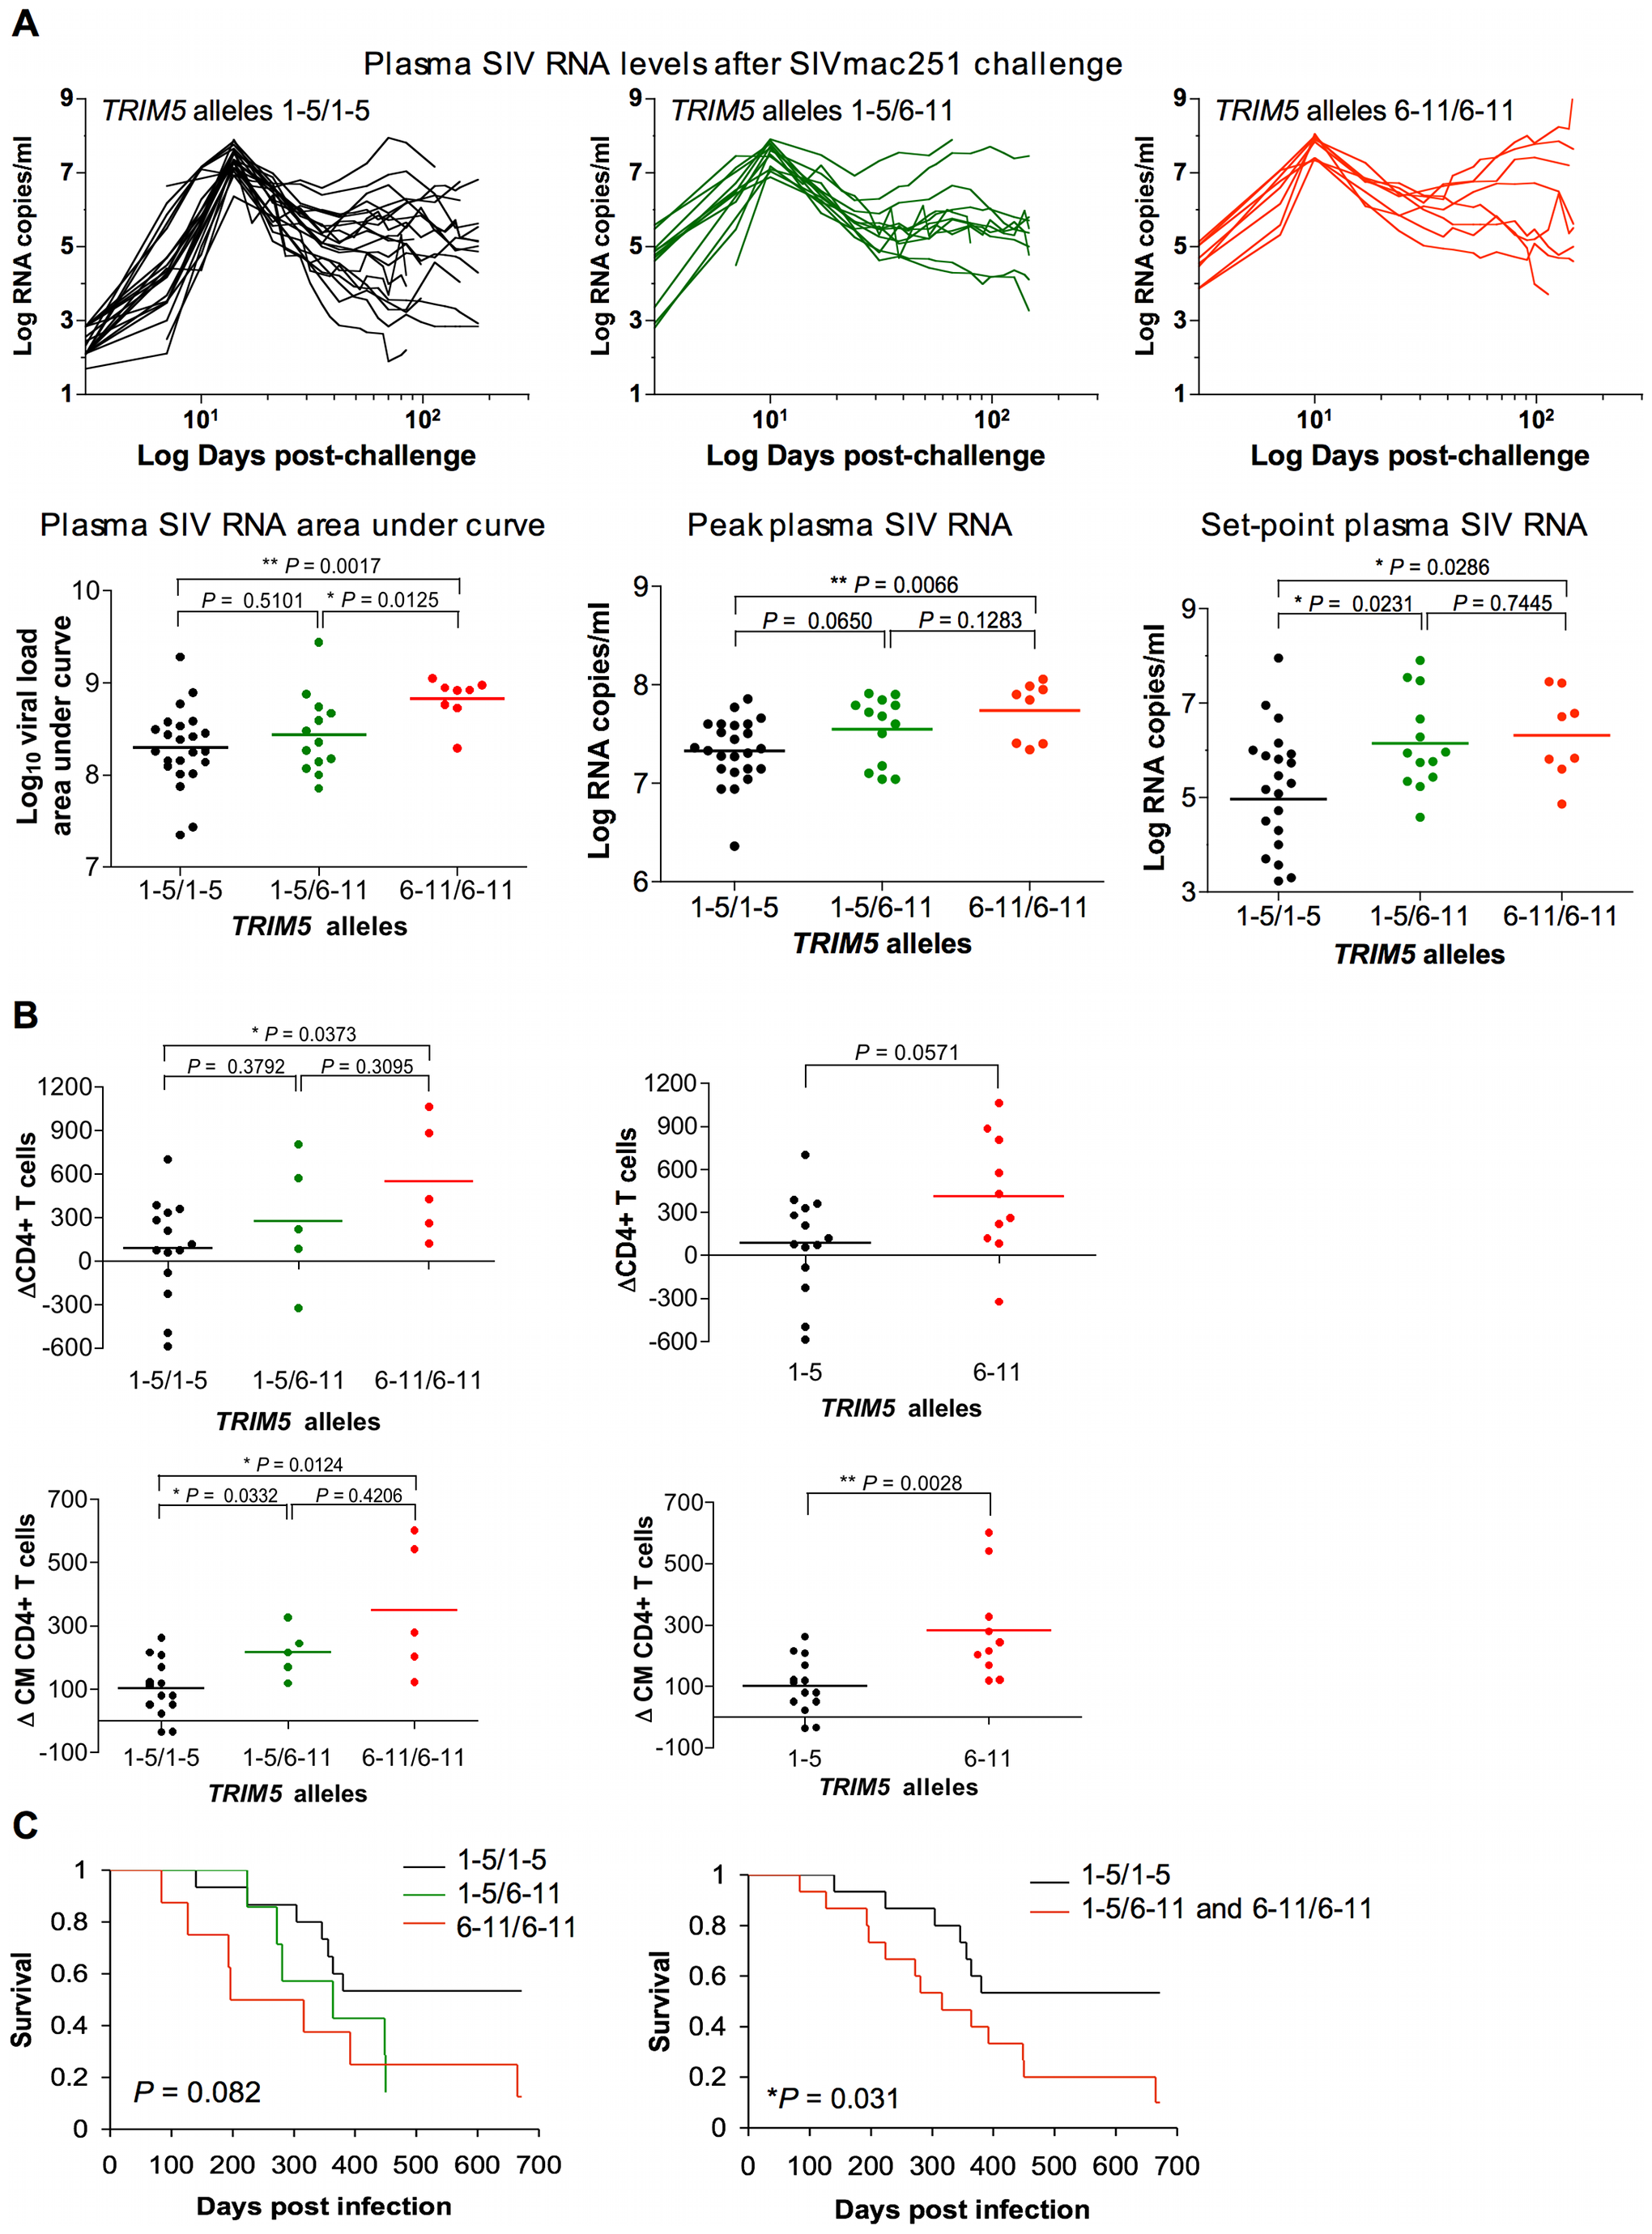 Association of the expression of groups of <i>TRIM5</i> alleles by rhesus monkeys with viral replication following SIVmac251 infection.